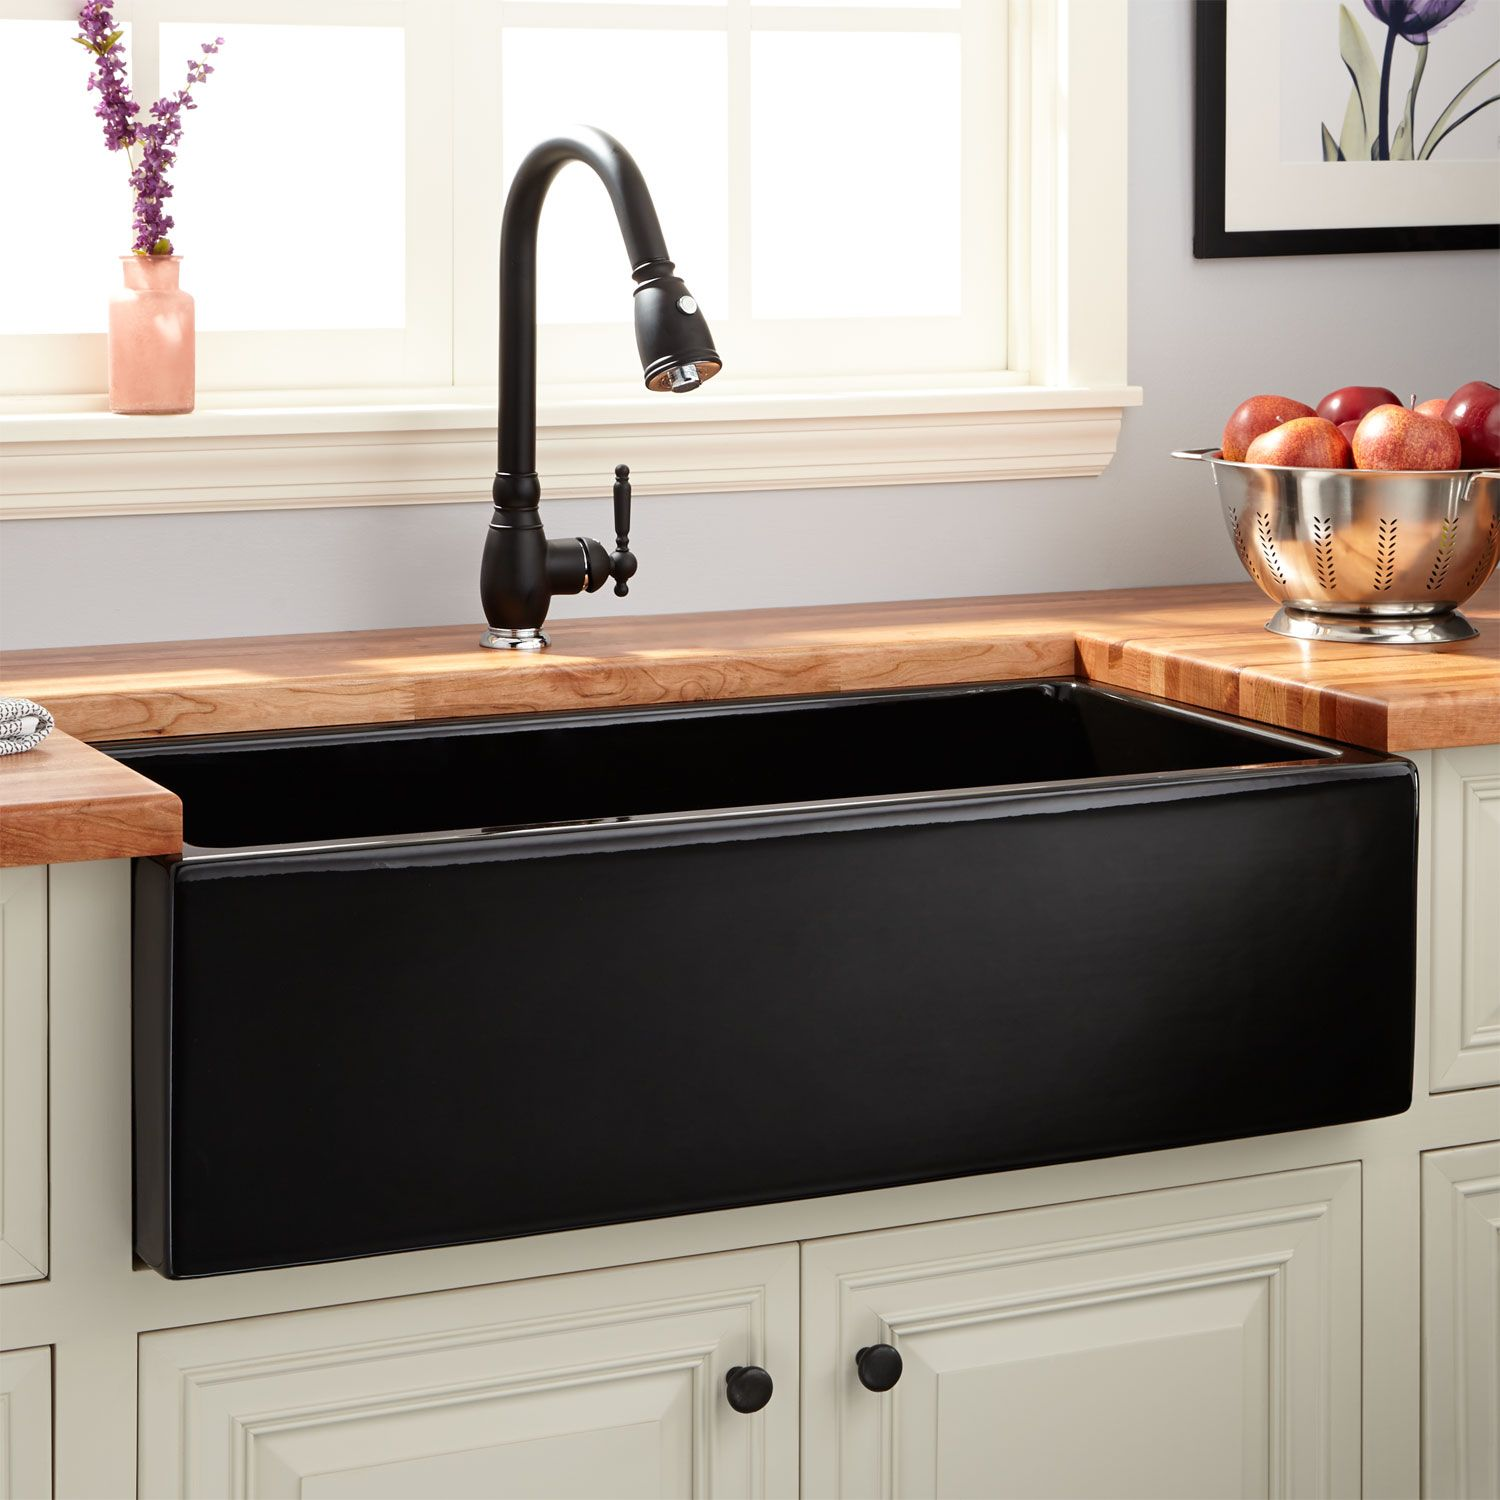 30 Mitzy Fireclay Reversible Farmhouse Sink Fluted Apron Black